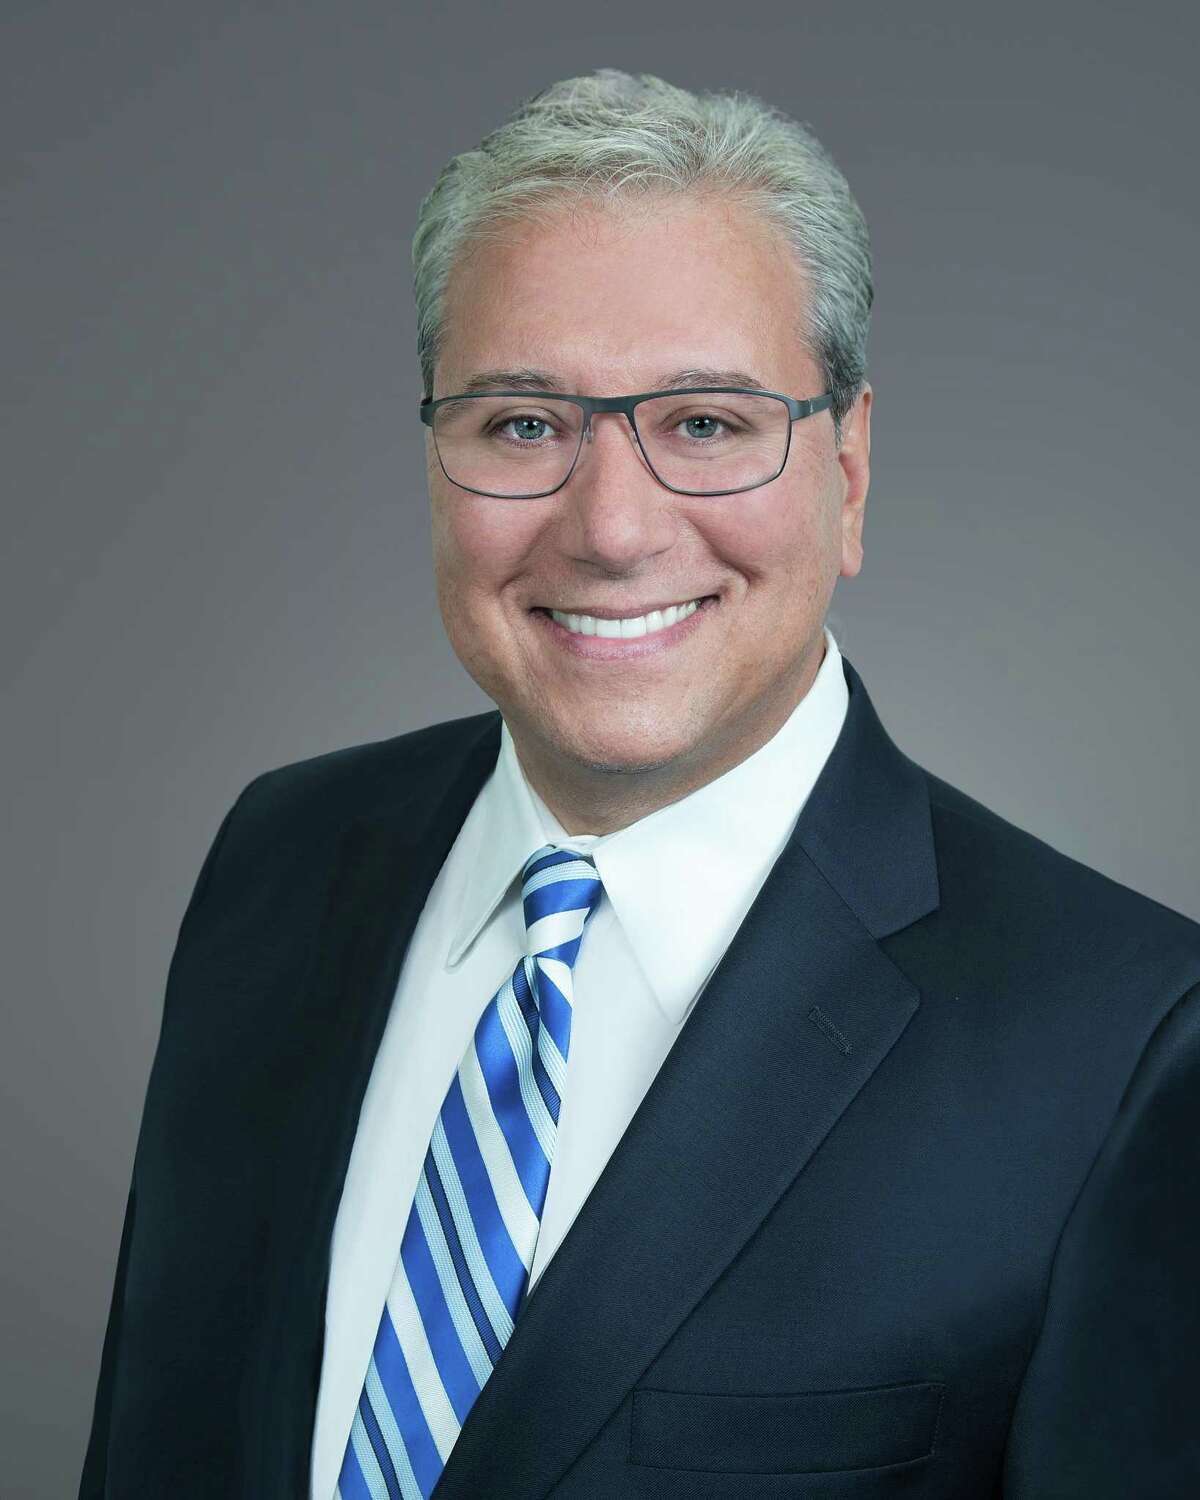 Thom Parrino, of New Canaan, co-founded a new law firm Parrino Shattuck PC in Westport.